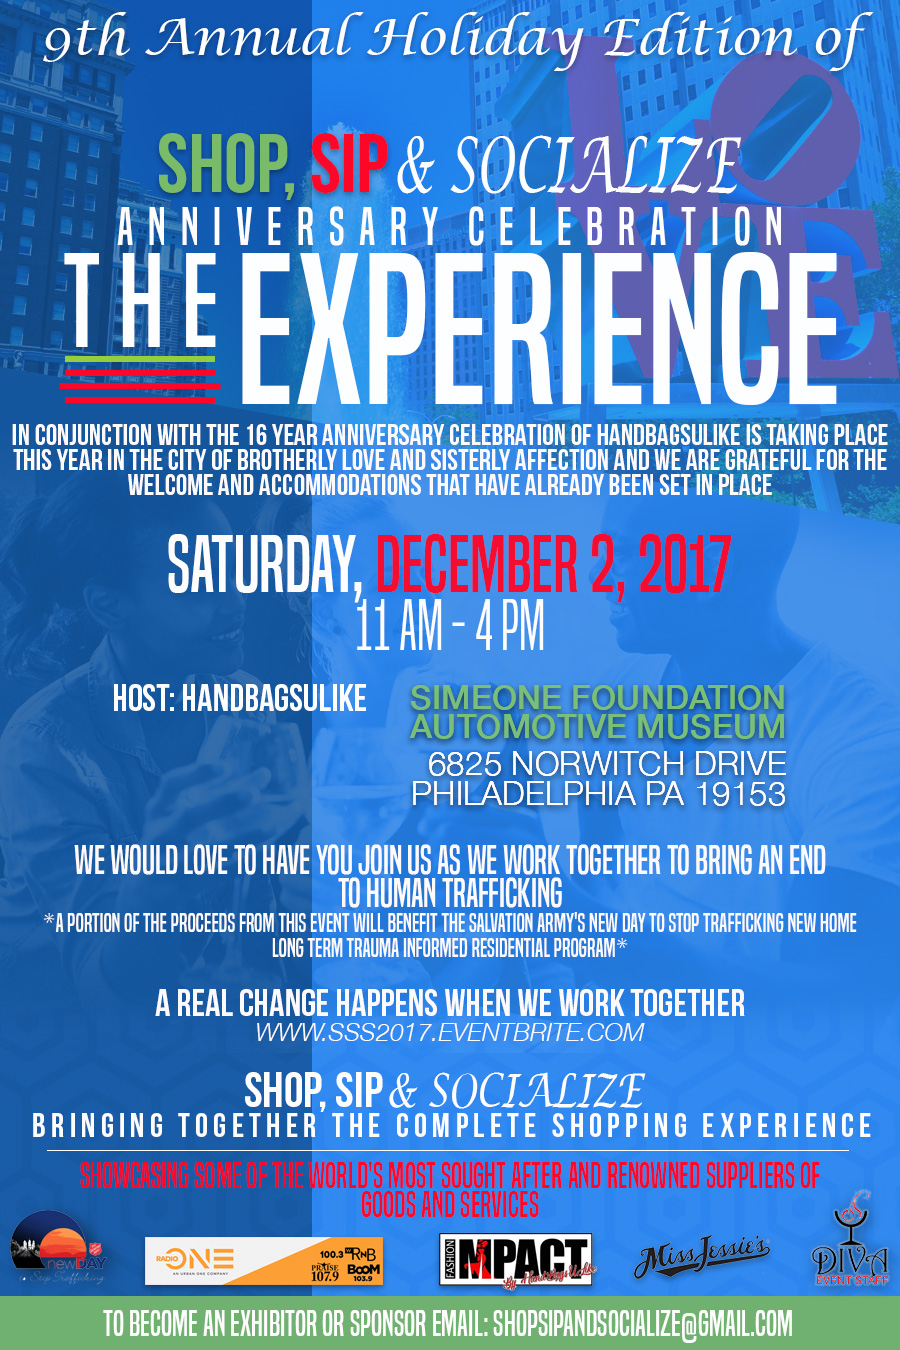 Shop, Sip & Socialize: The Experience